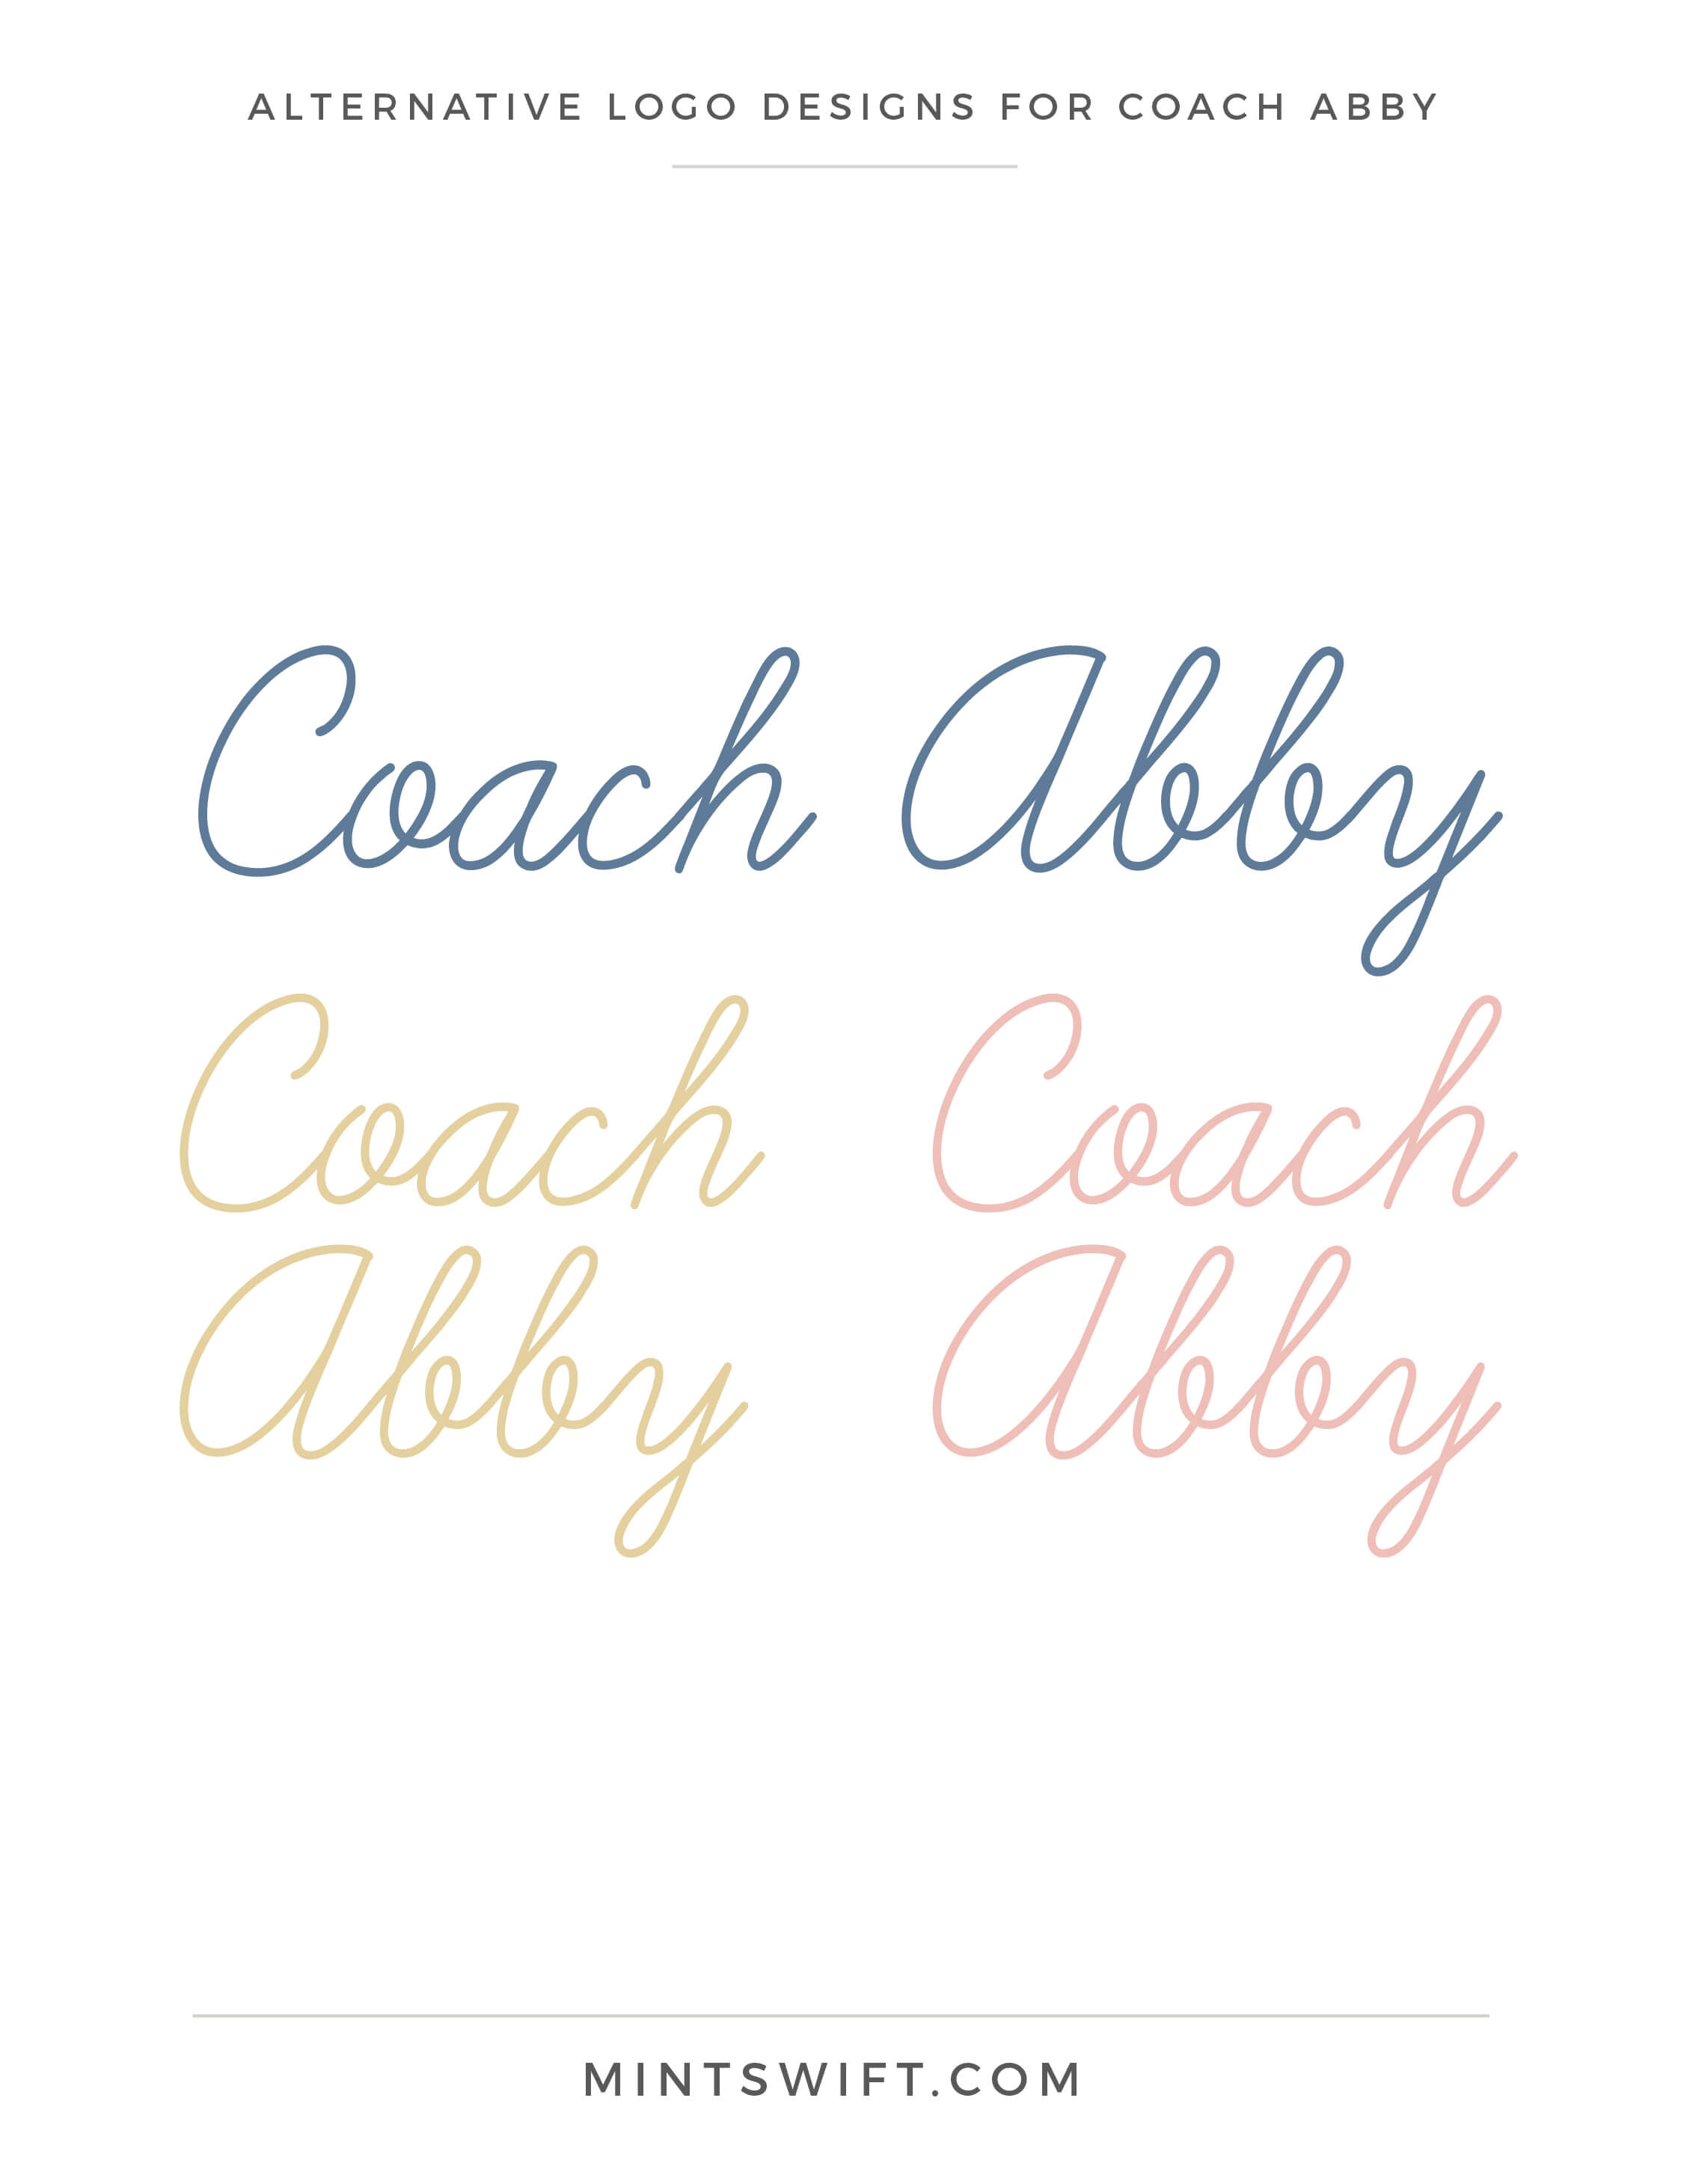 Coach Abby - Alternative Logo Designs - Brand Design - MintSwift